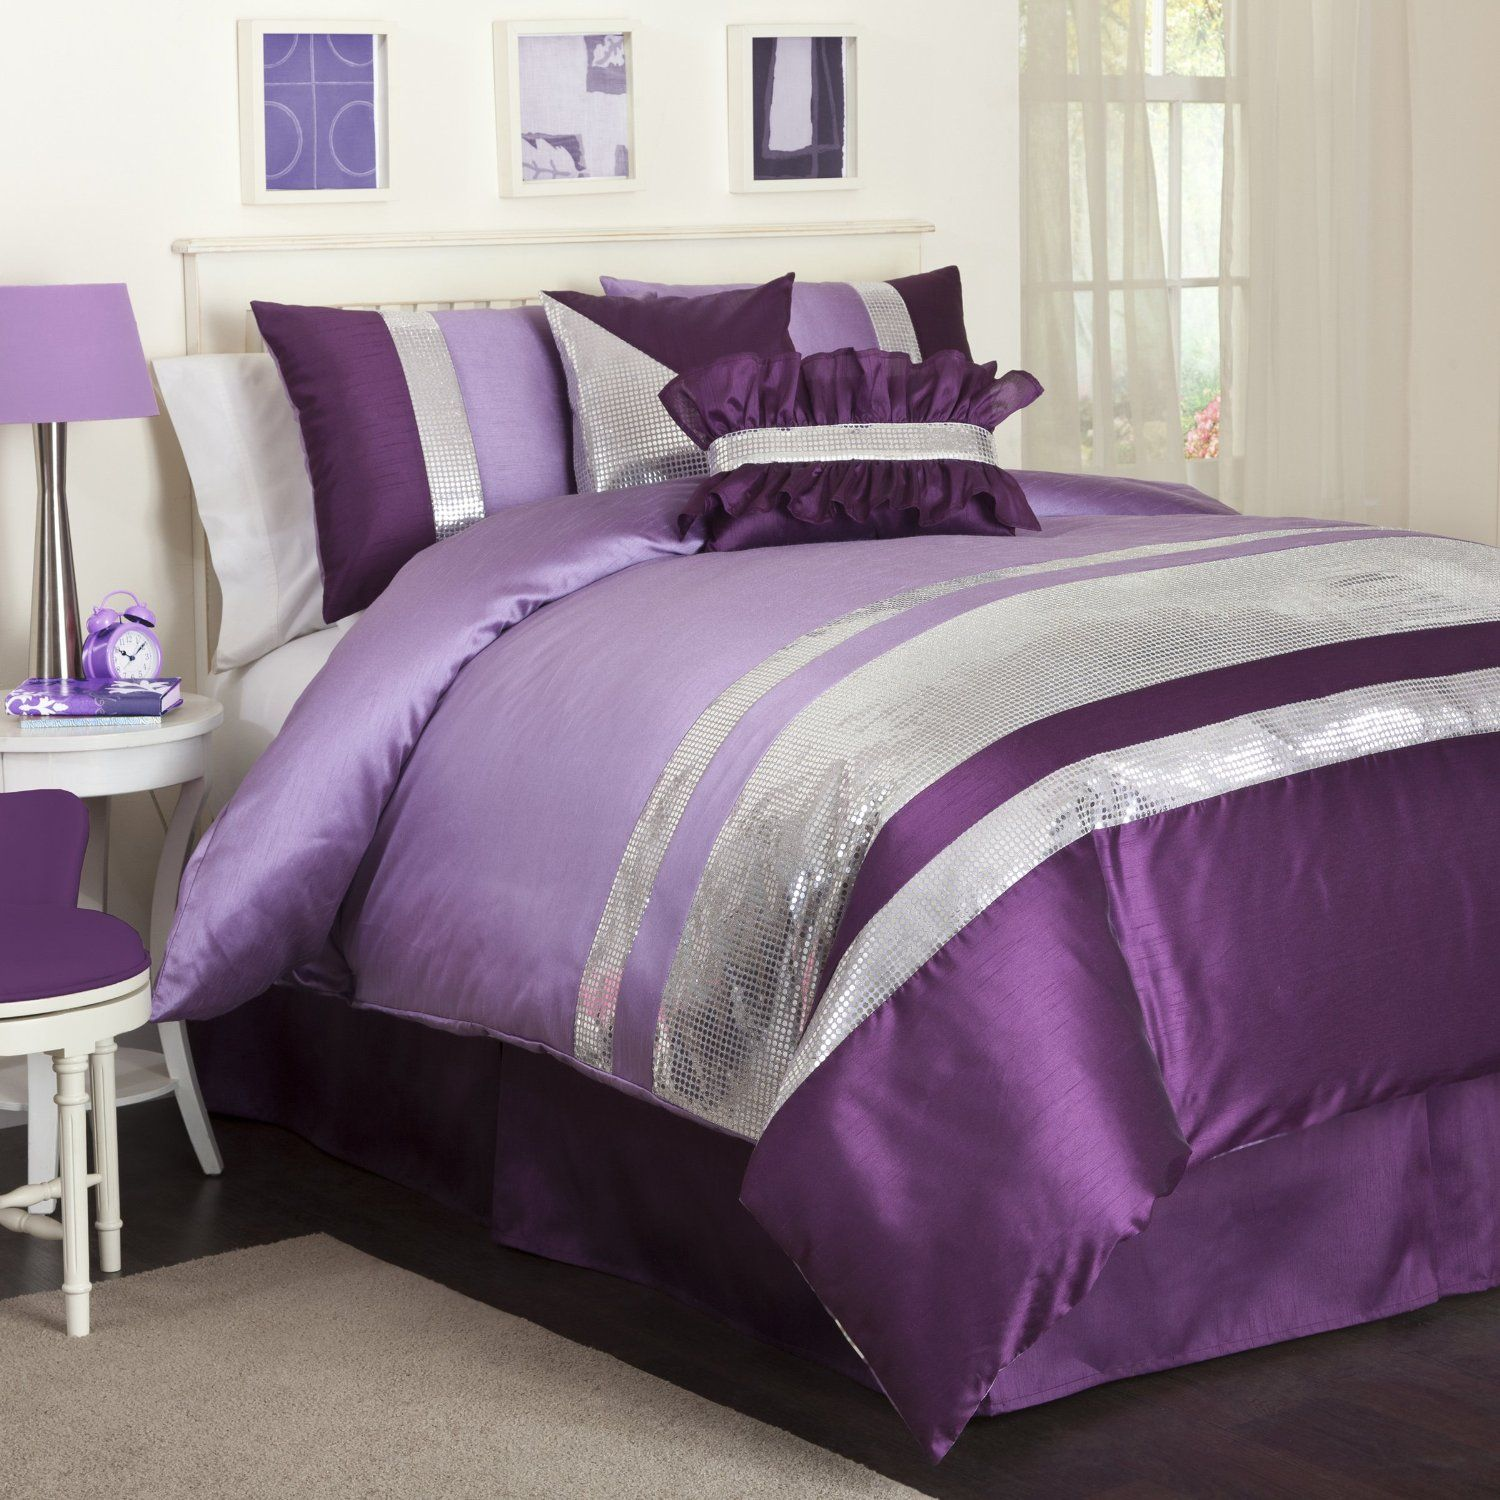 Twin Bedding Sets purple and green